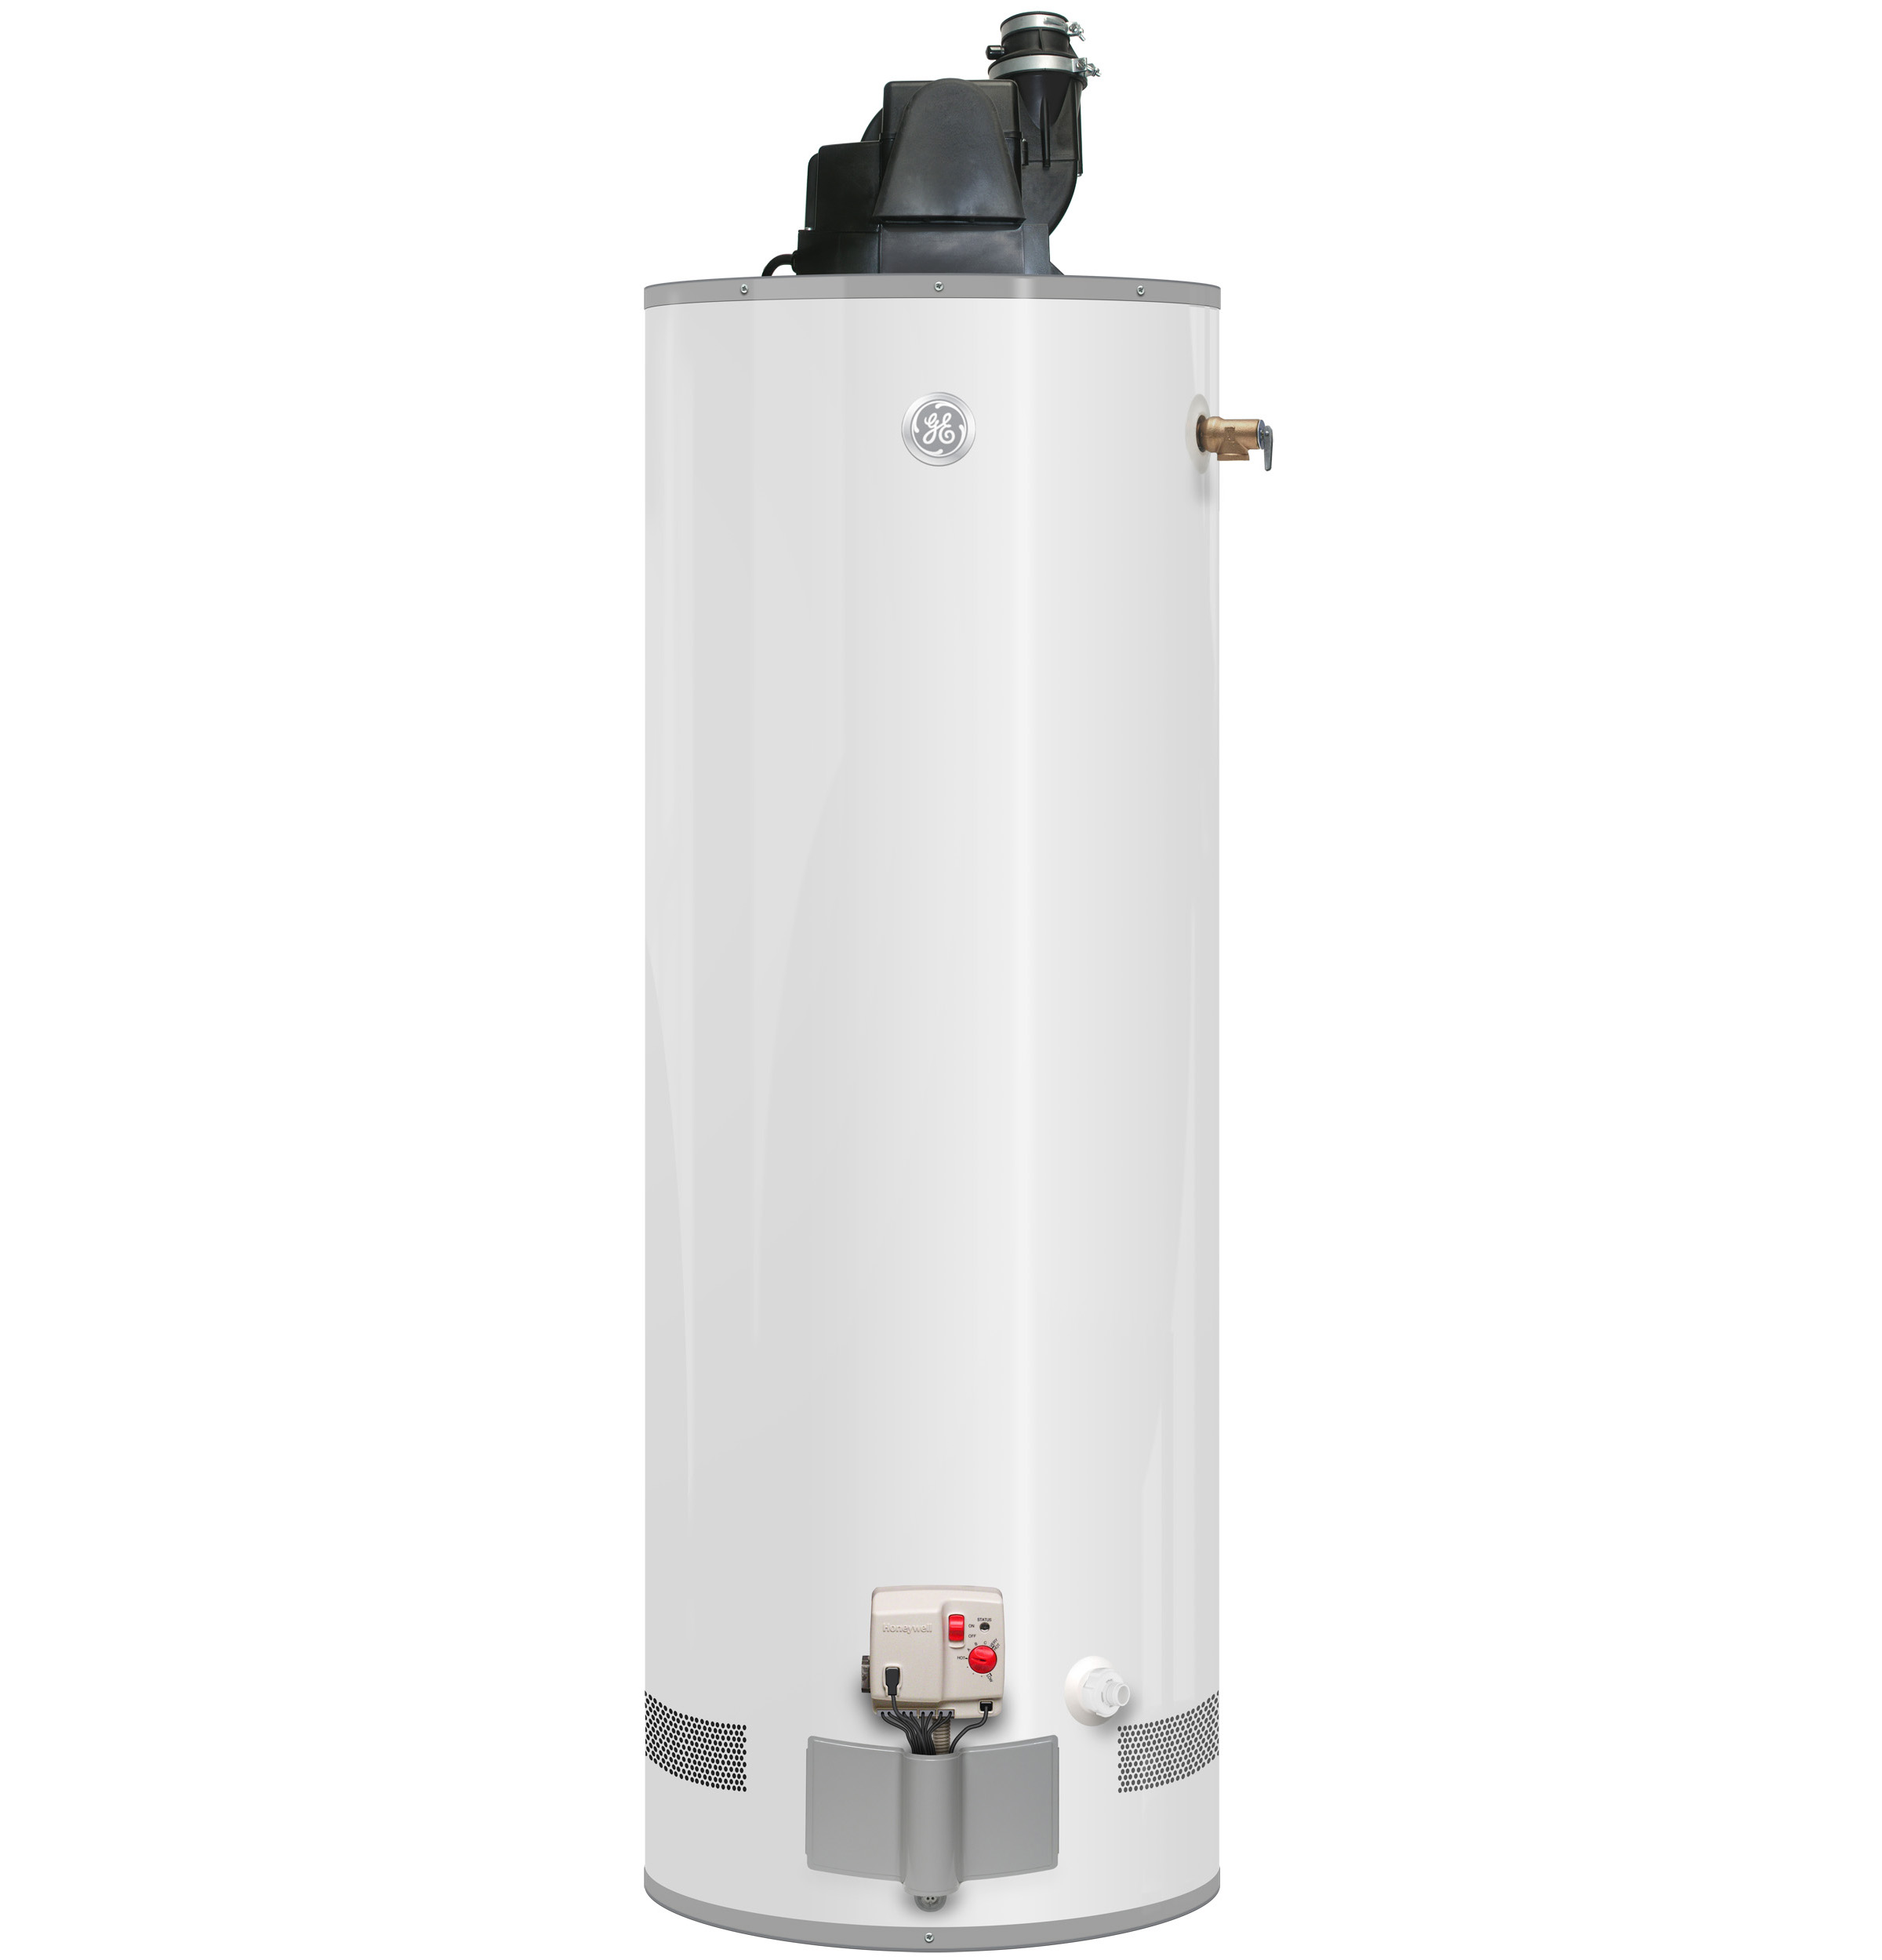 Ge 174 Gas Powervent Water Heater Gg50t06pvt Ge Appliances